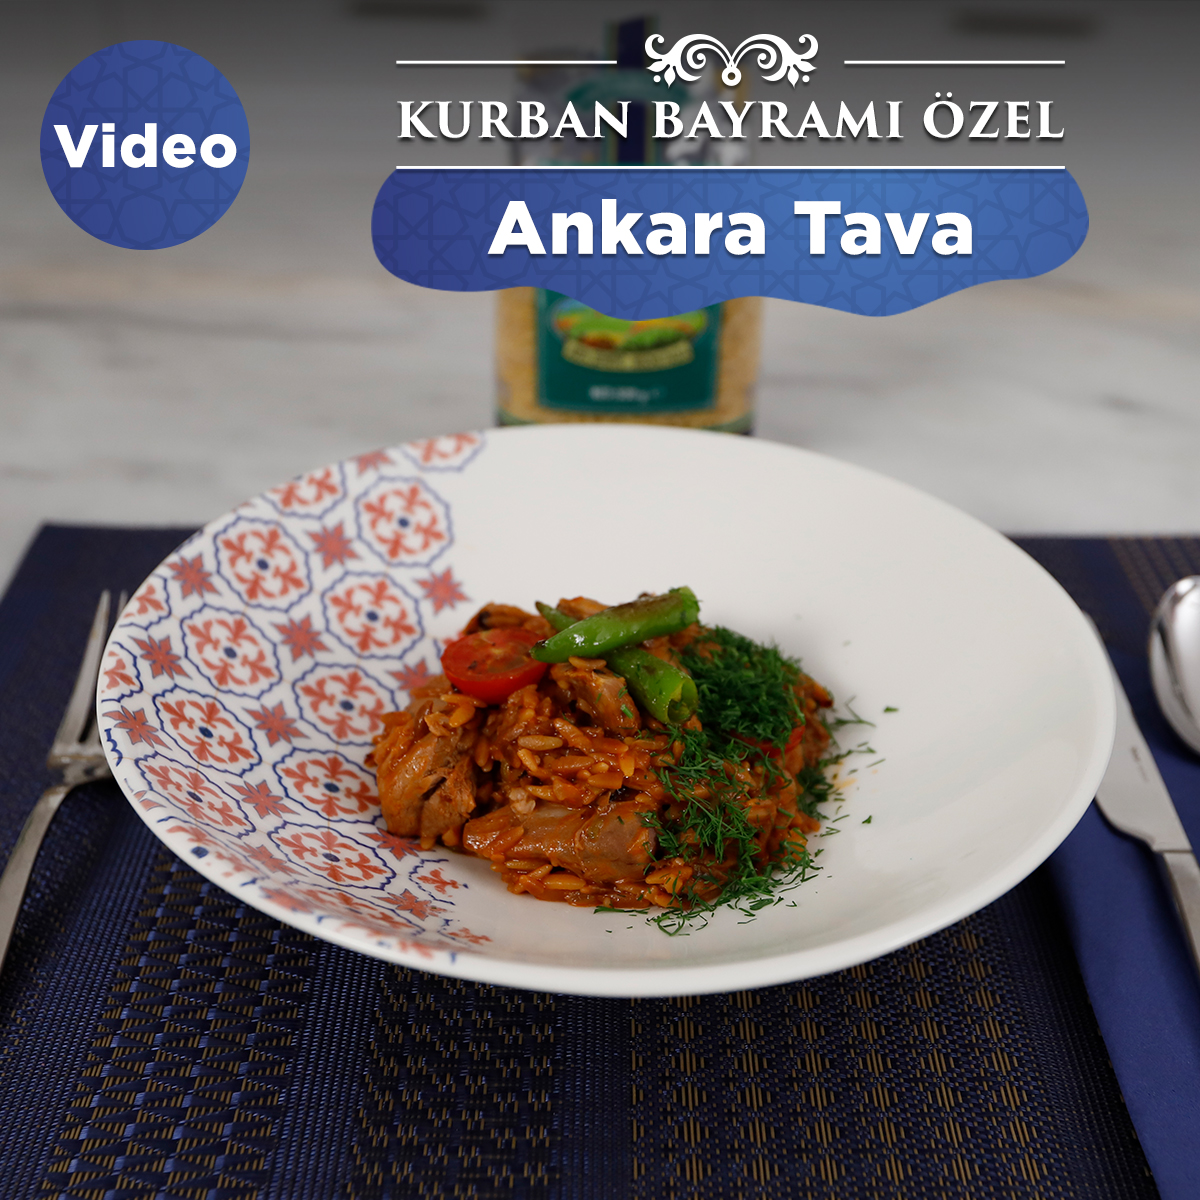 Ankara Tava Tarifi | Video